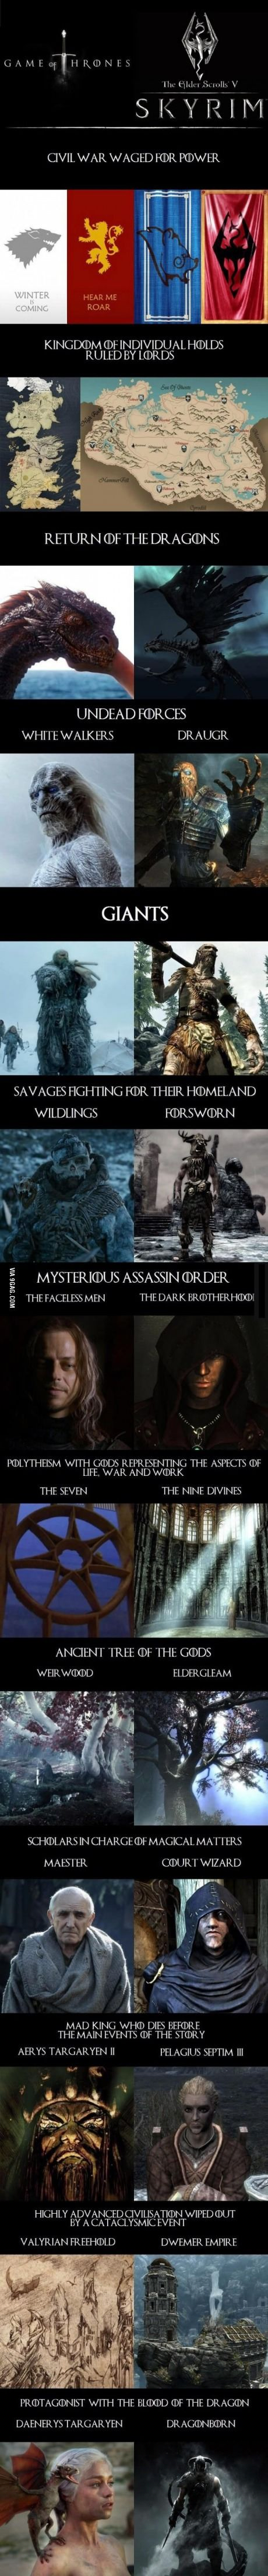 Game Of Thrones Is Just Like Skyrim  They need an LOTR comparison with these